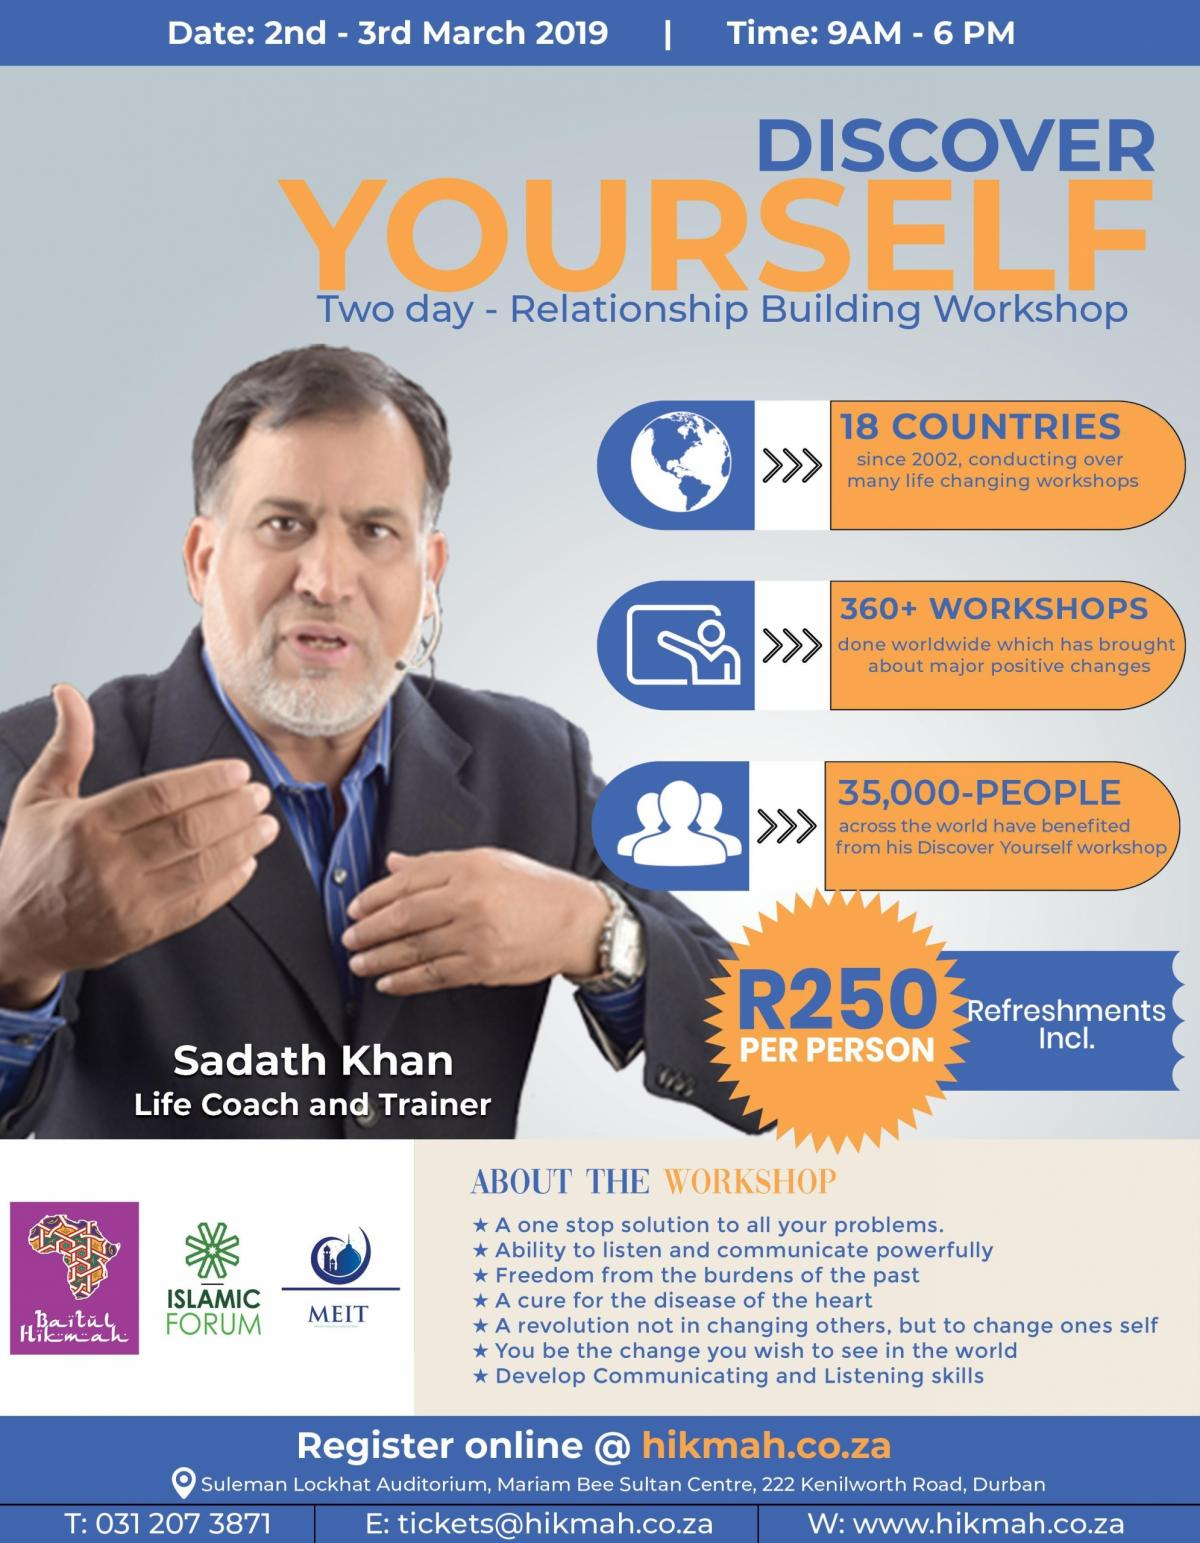 Sadatullah Khan - Discover Yourself (Two Day - Relationship Building Workshop)